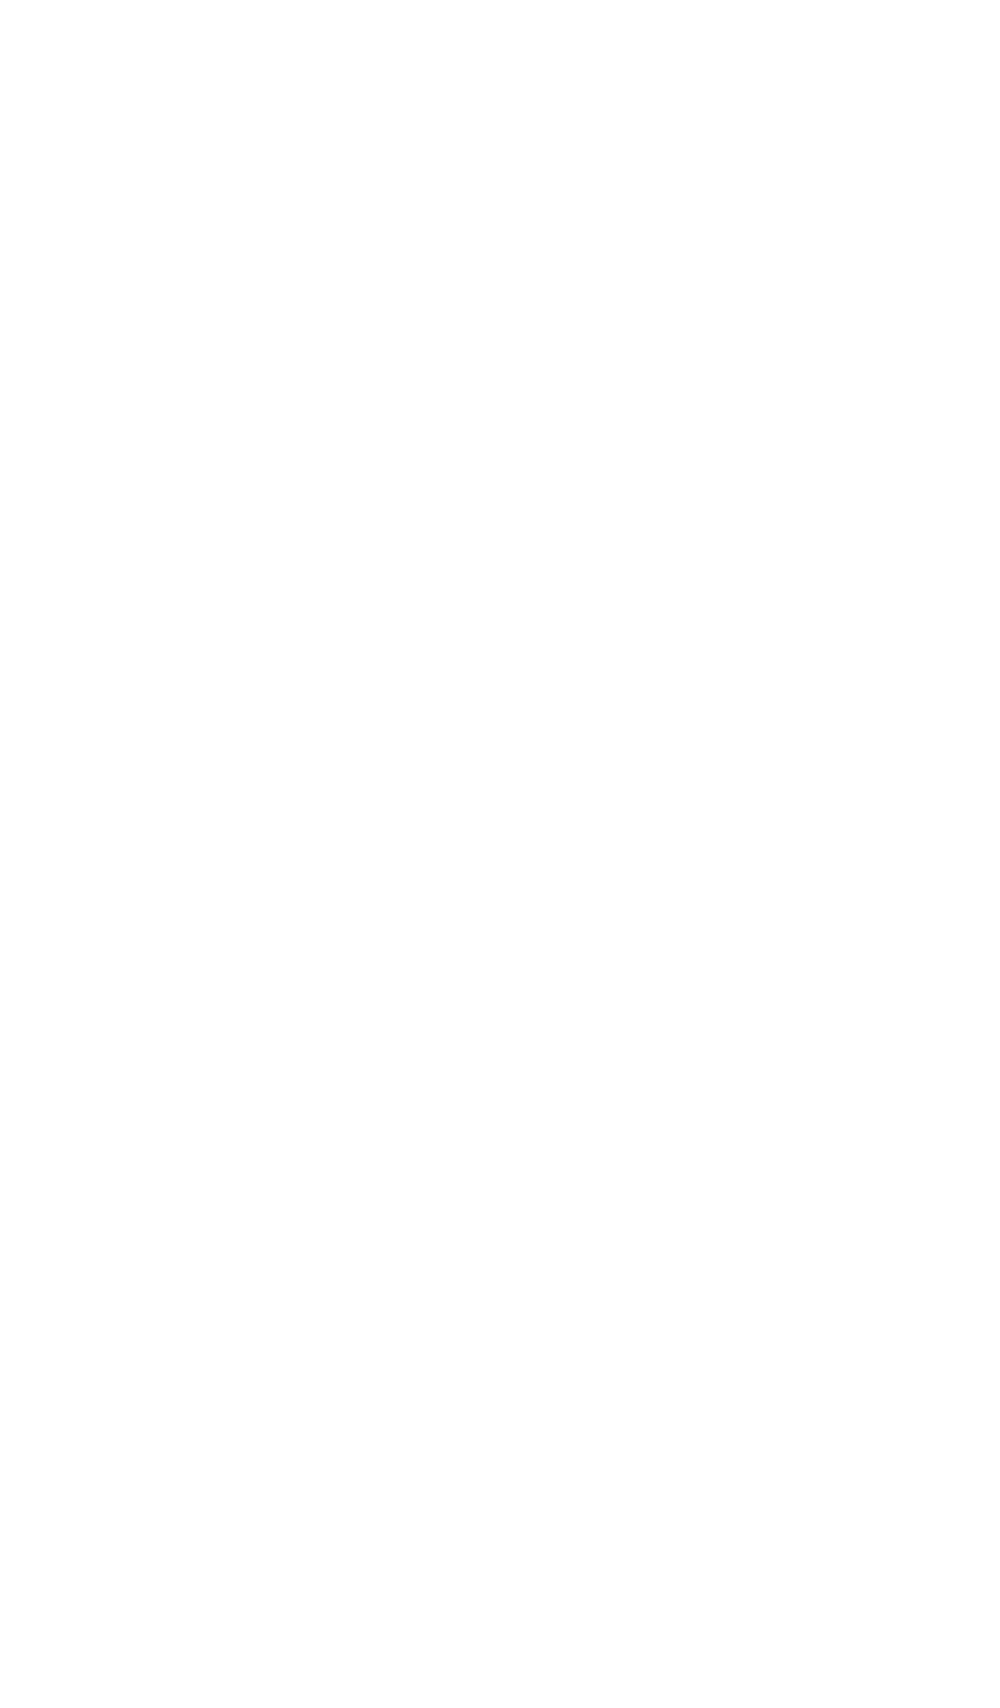 simple bug logo wht on blk.png